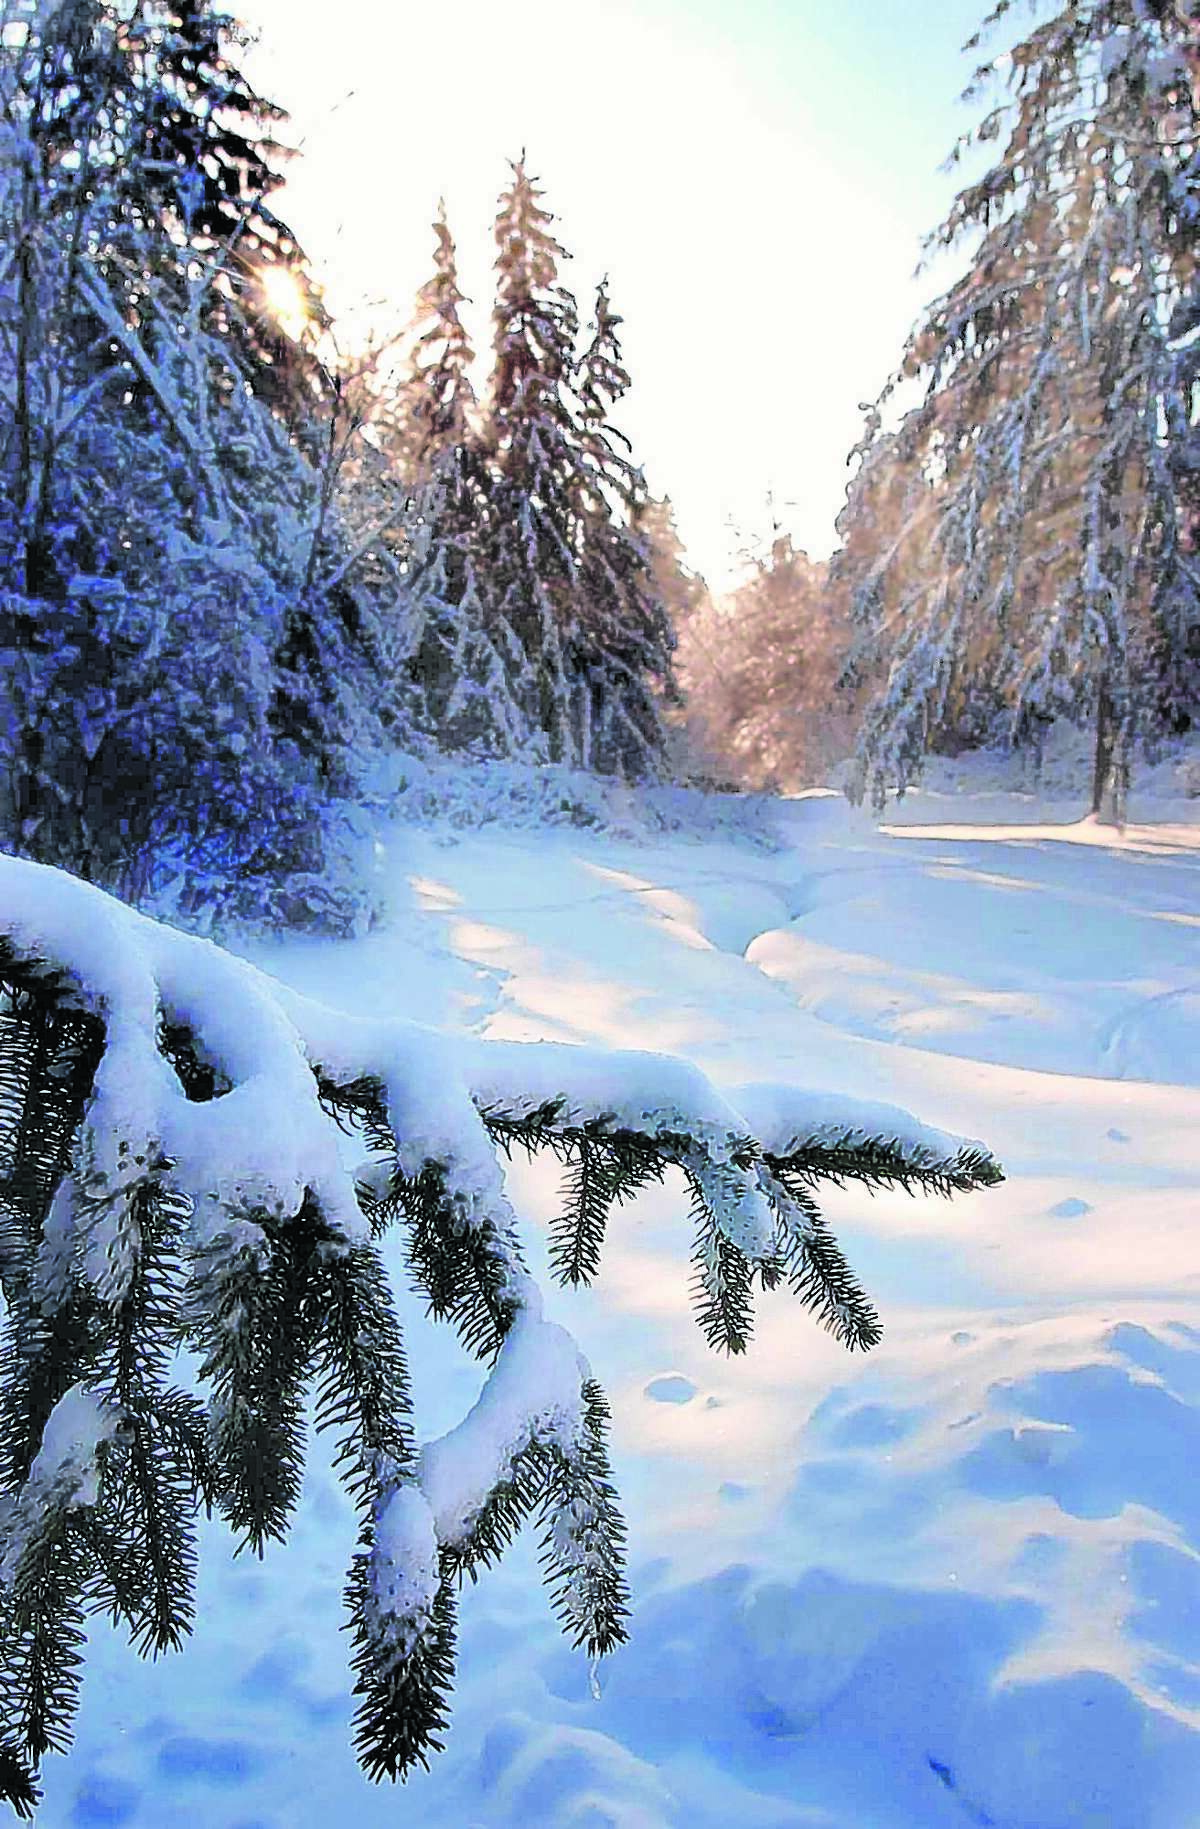 This can be a beautiful site or a depressing one, depending on your point of view. We'll start with a few ways you can enjoy winter outdoors.